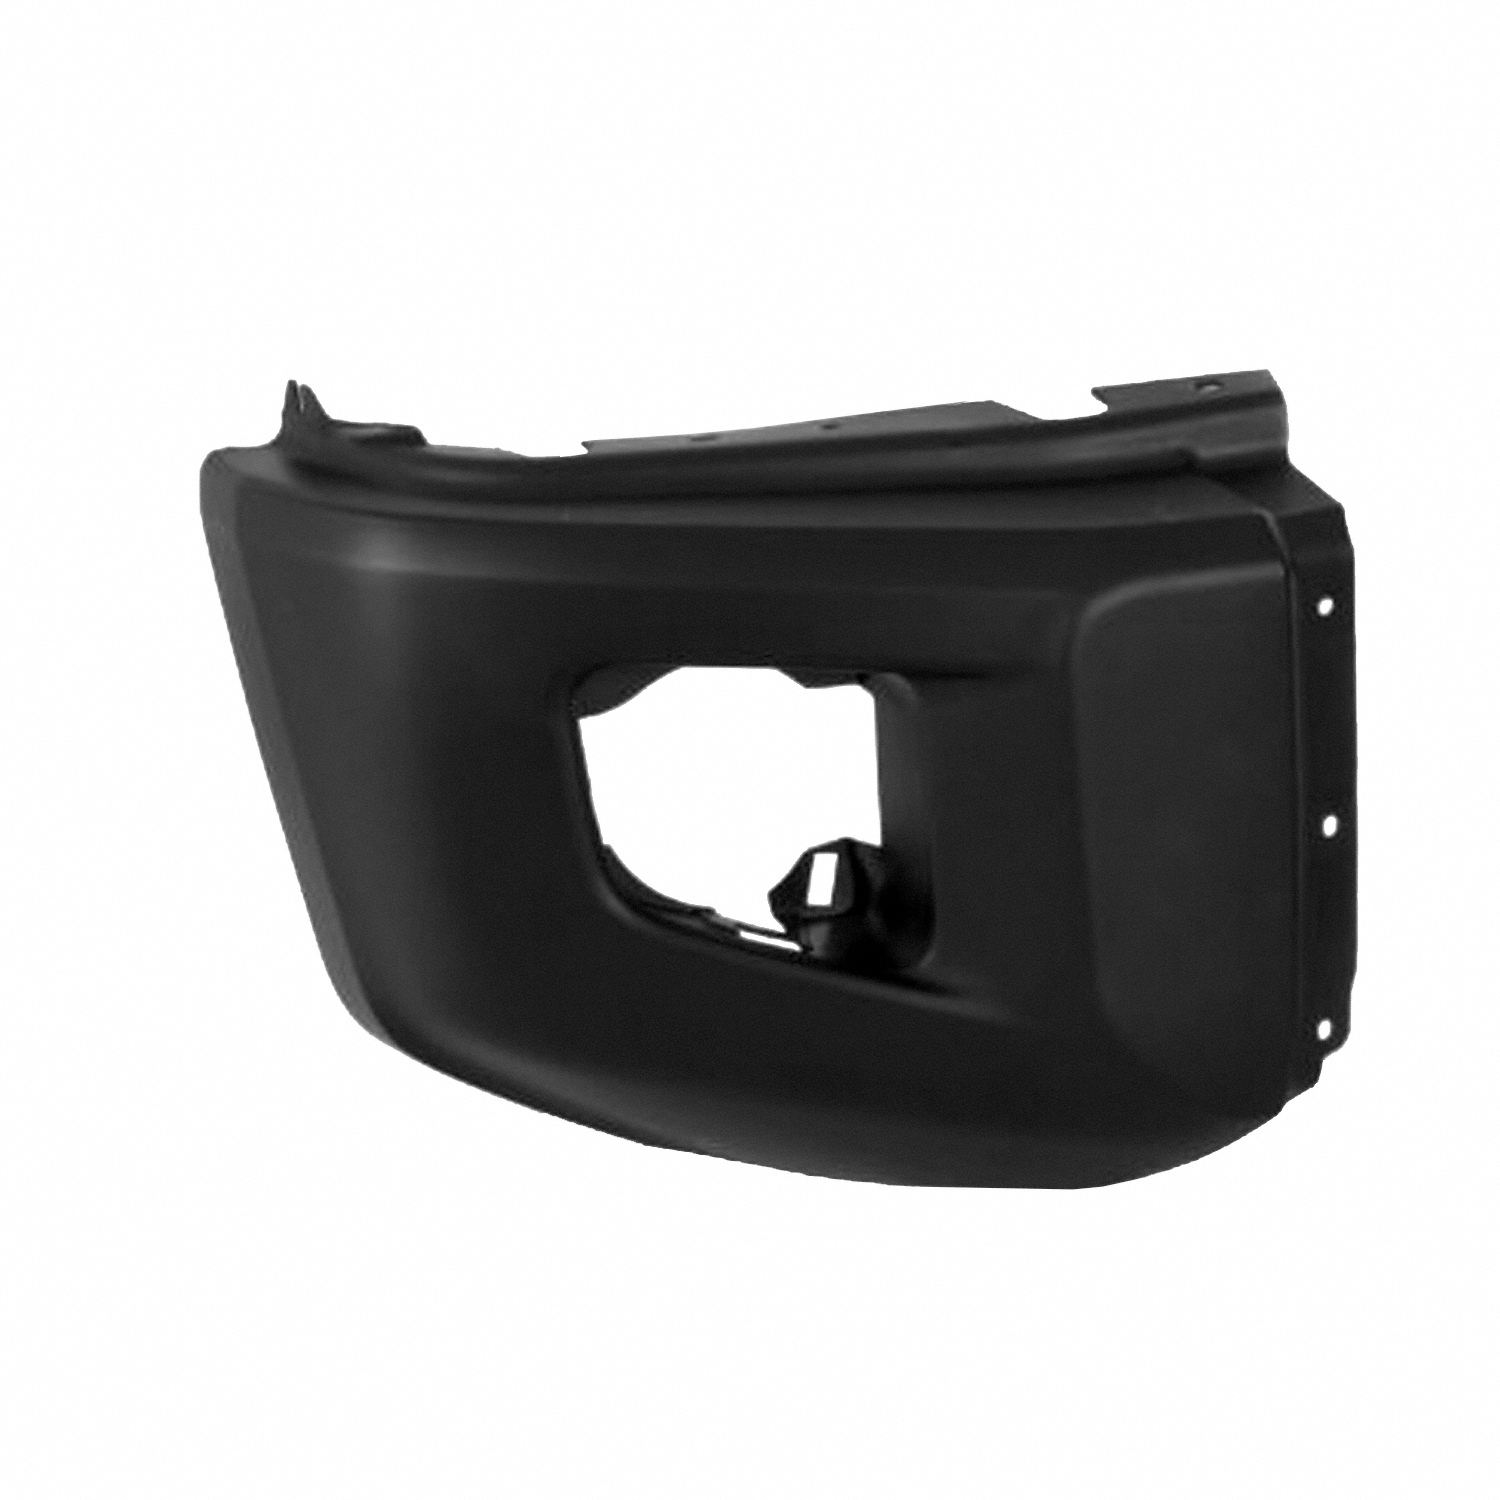 TOYOTA OEM 2014-2016 Tundra Front Bumper-End Cap Right 52112-0C080 OEM FACTORY